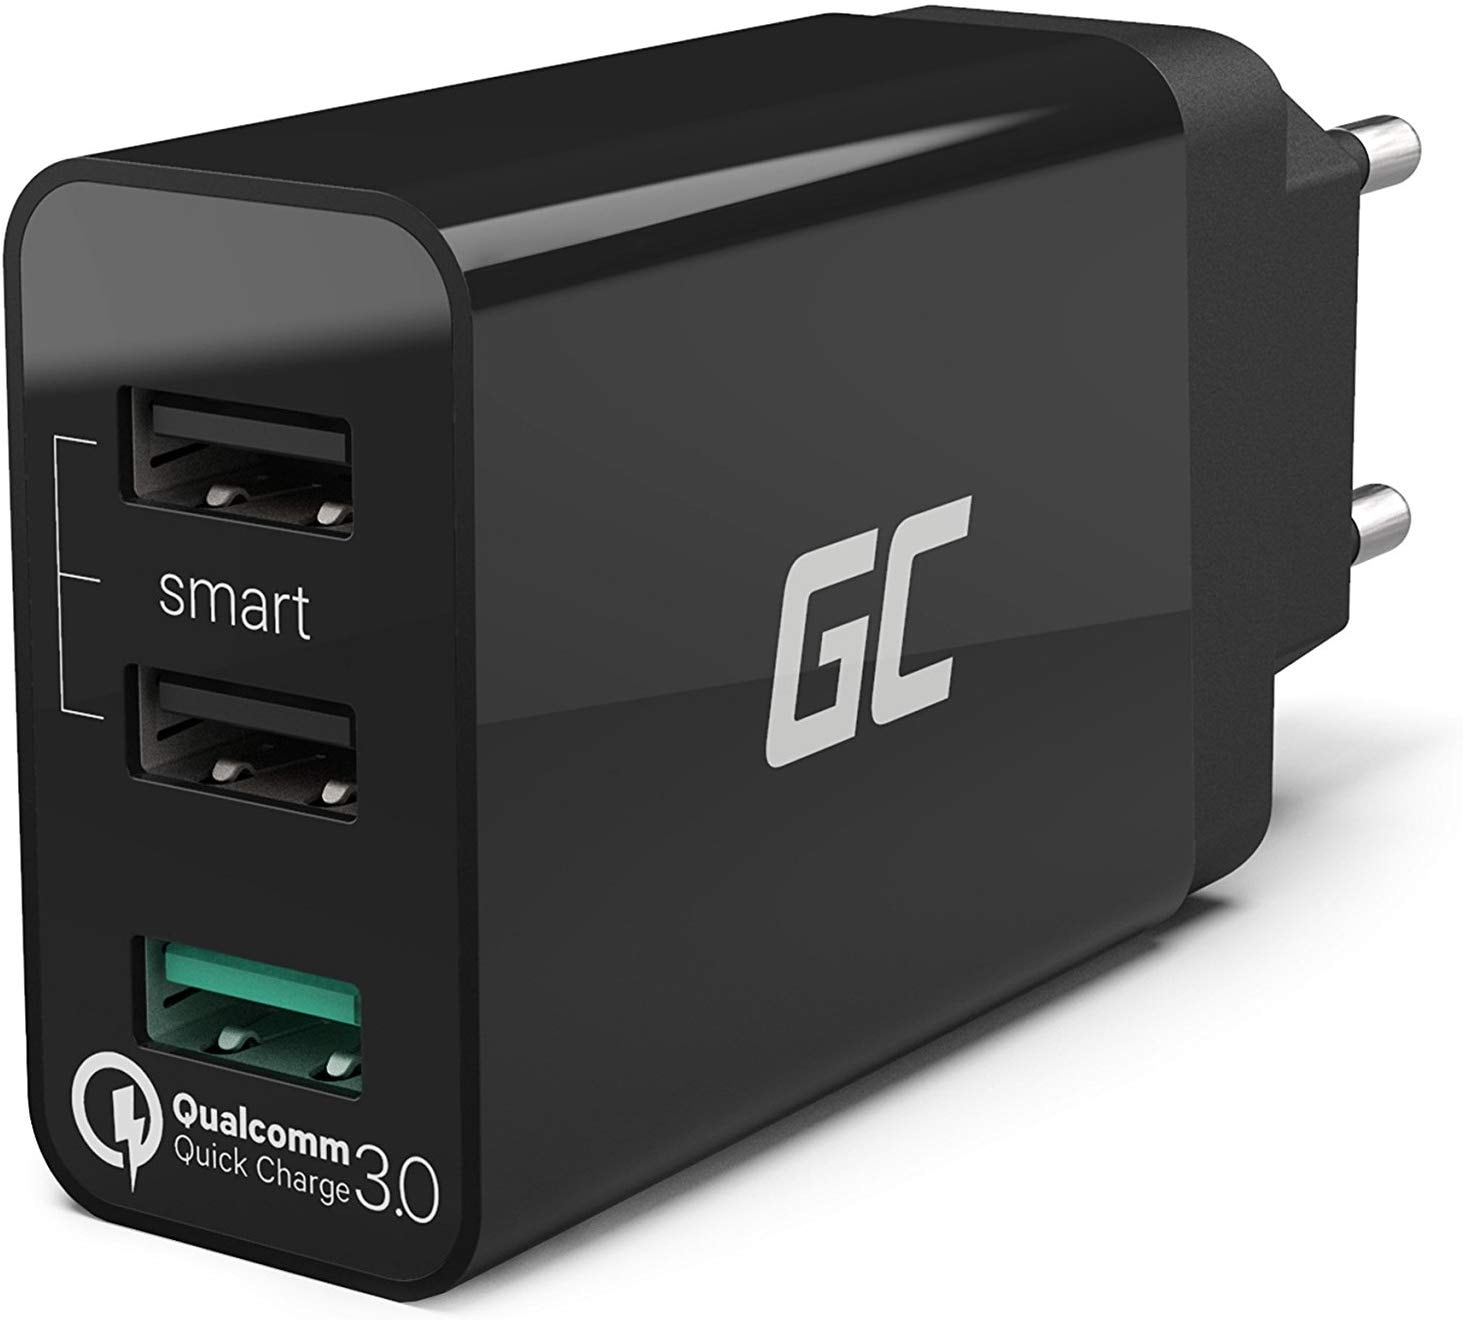 GC® Universal Charger 30W 3-Port USB with QC Quick Charge 3.0 for iPhone iPad Samsung Honor HTC Huawei LG Sony - 1